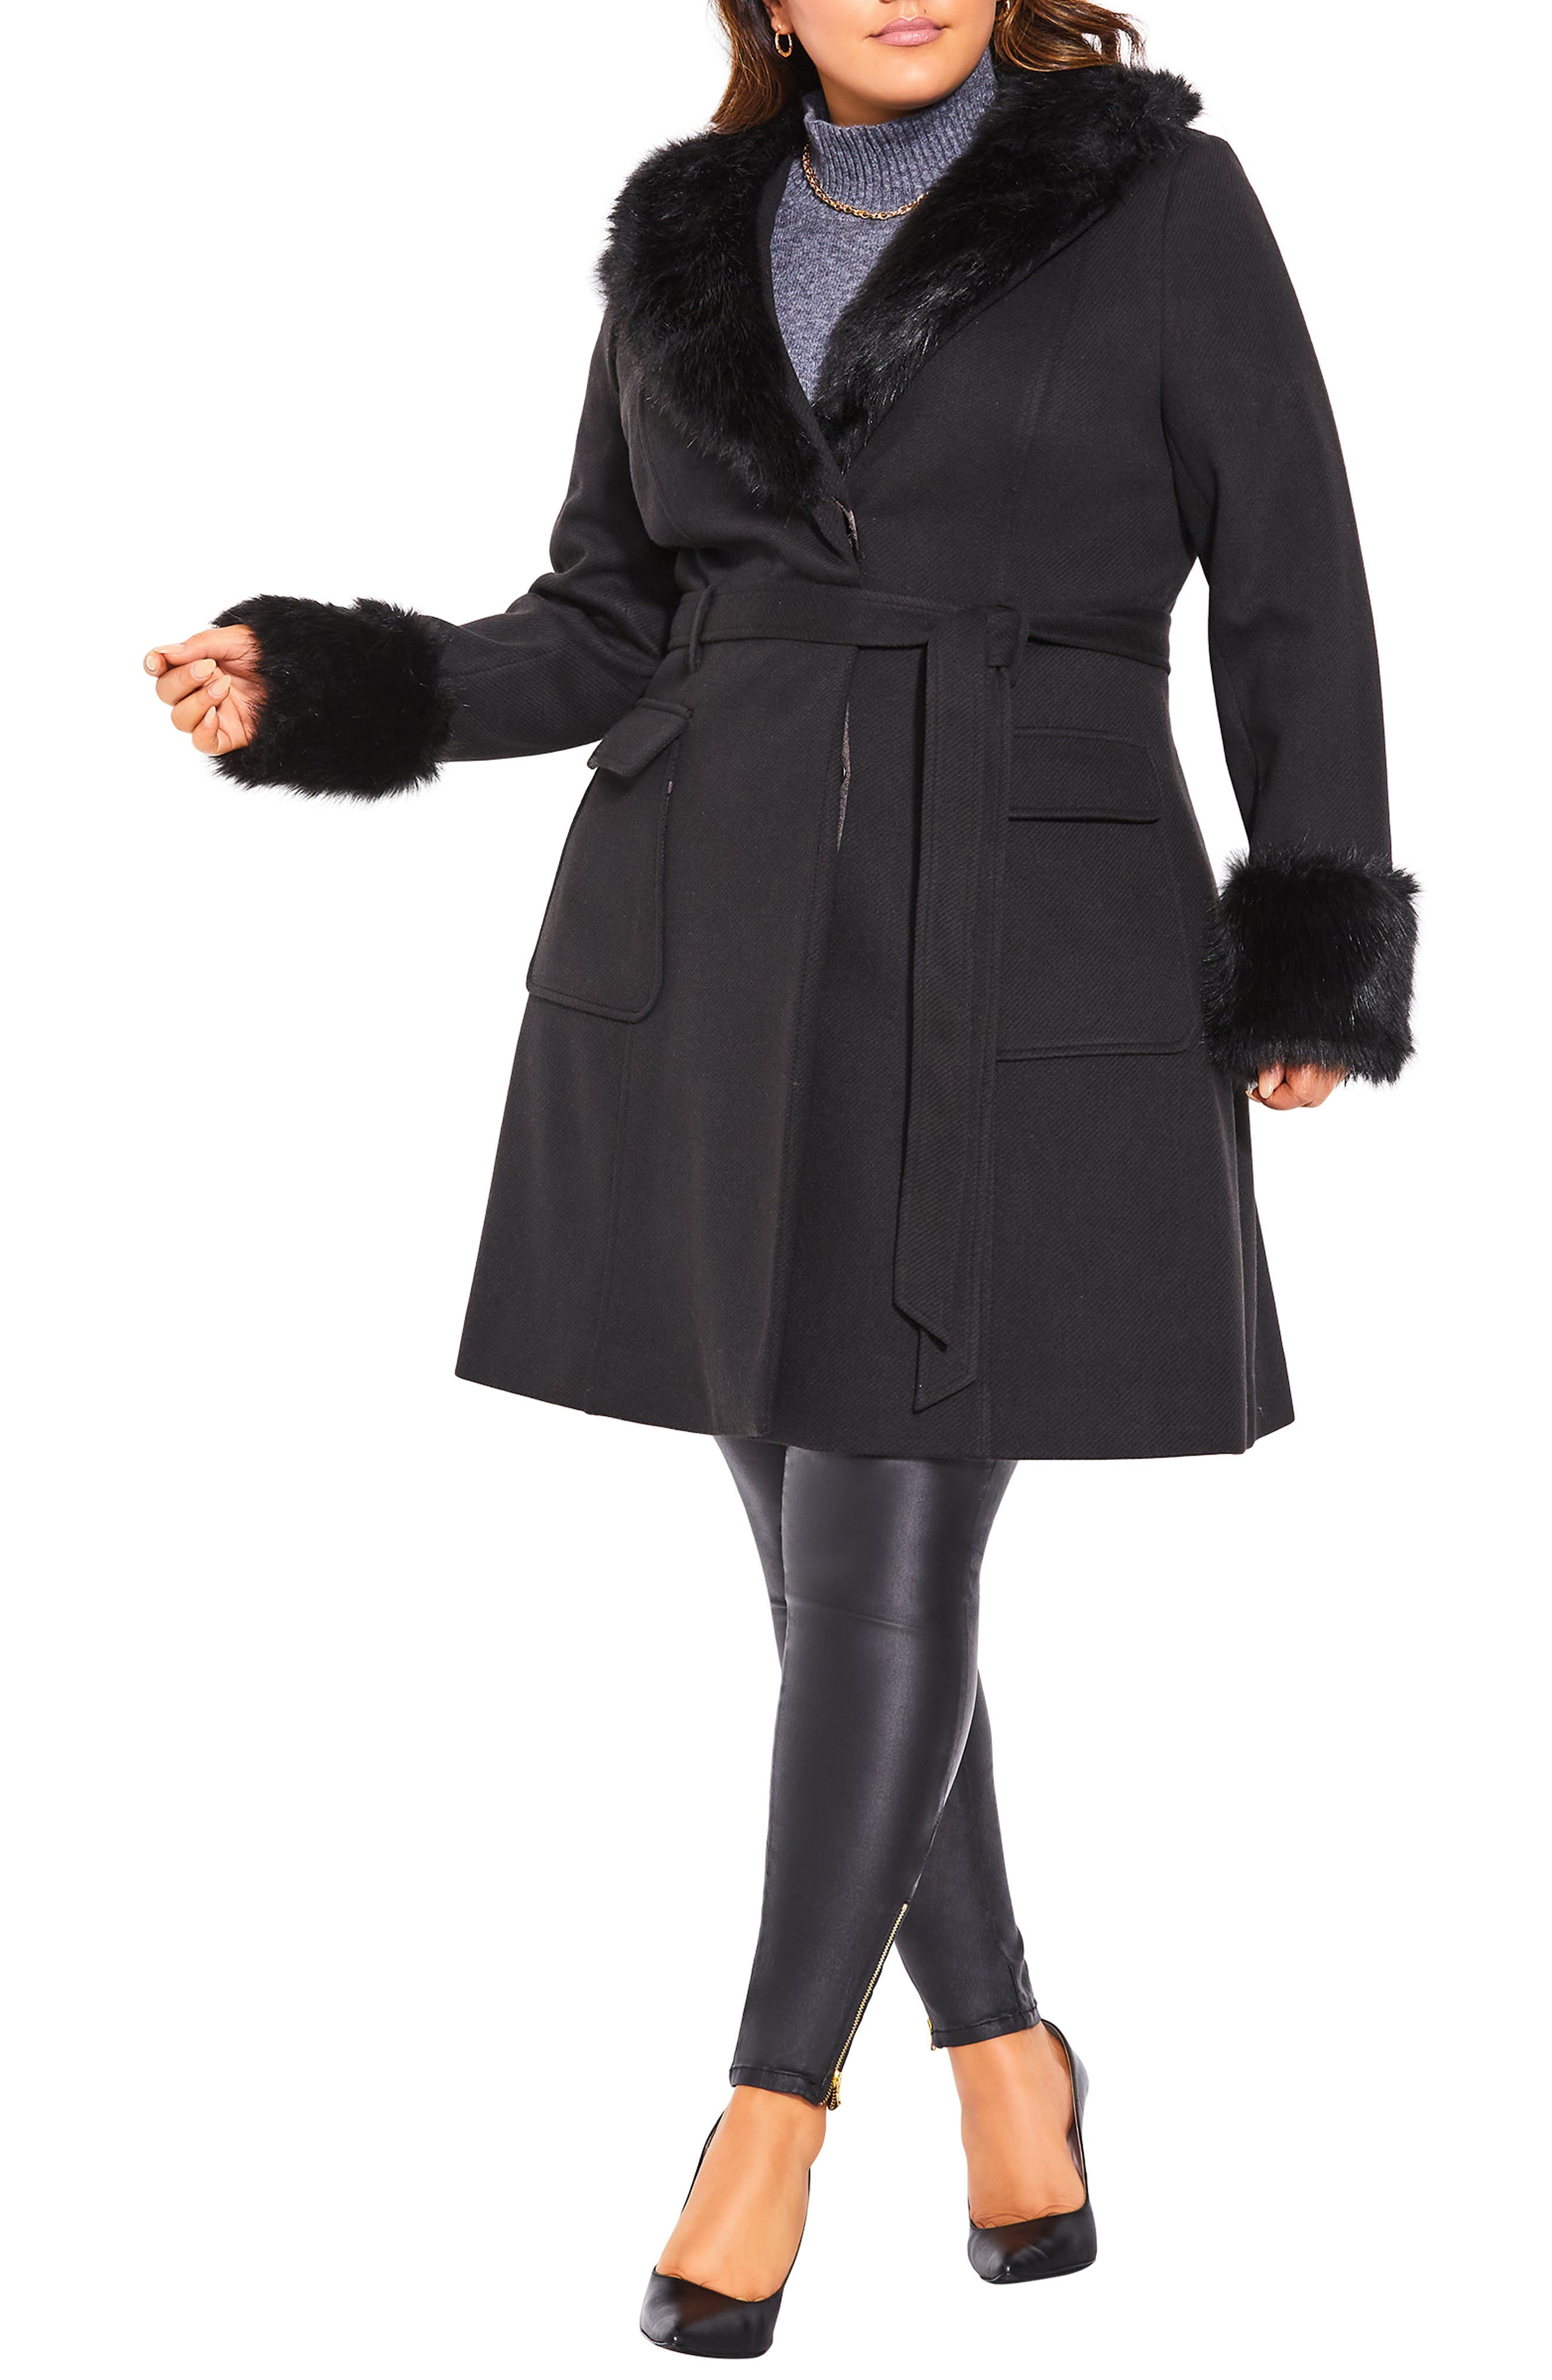 1950s Coats and Jackets History Plus Size Womens City Chic Make Me Blush Belted Coat With Faux Fur Trim Size Large - Red $189.00 AT vintagedancer.com